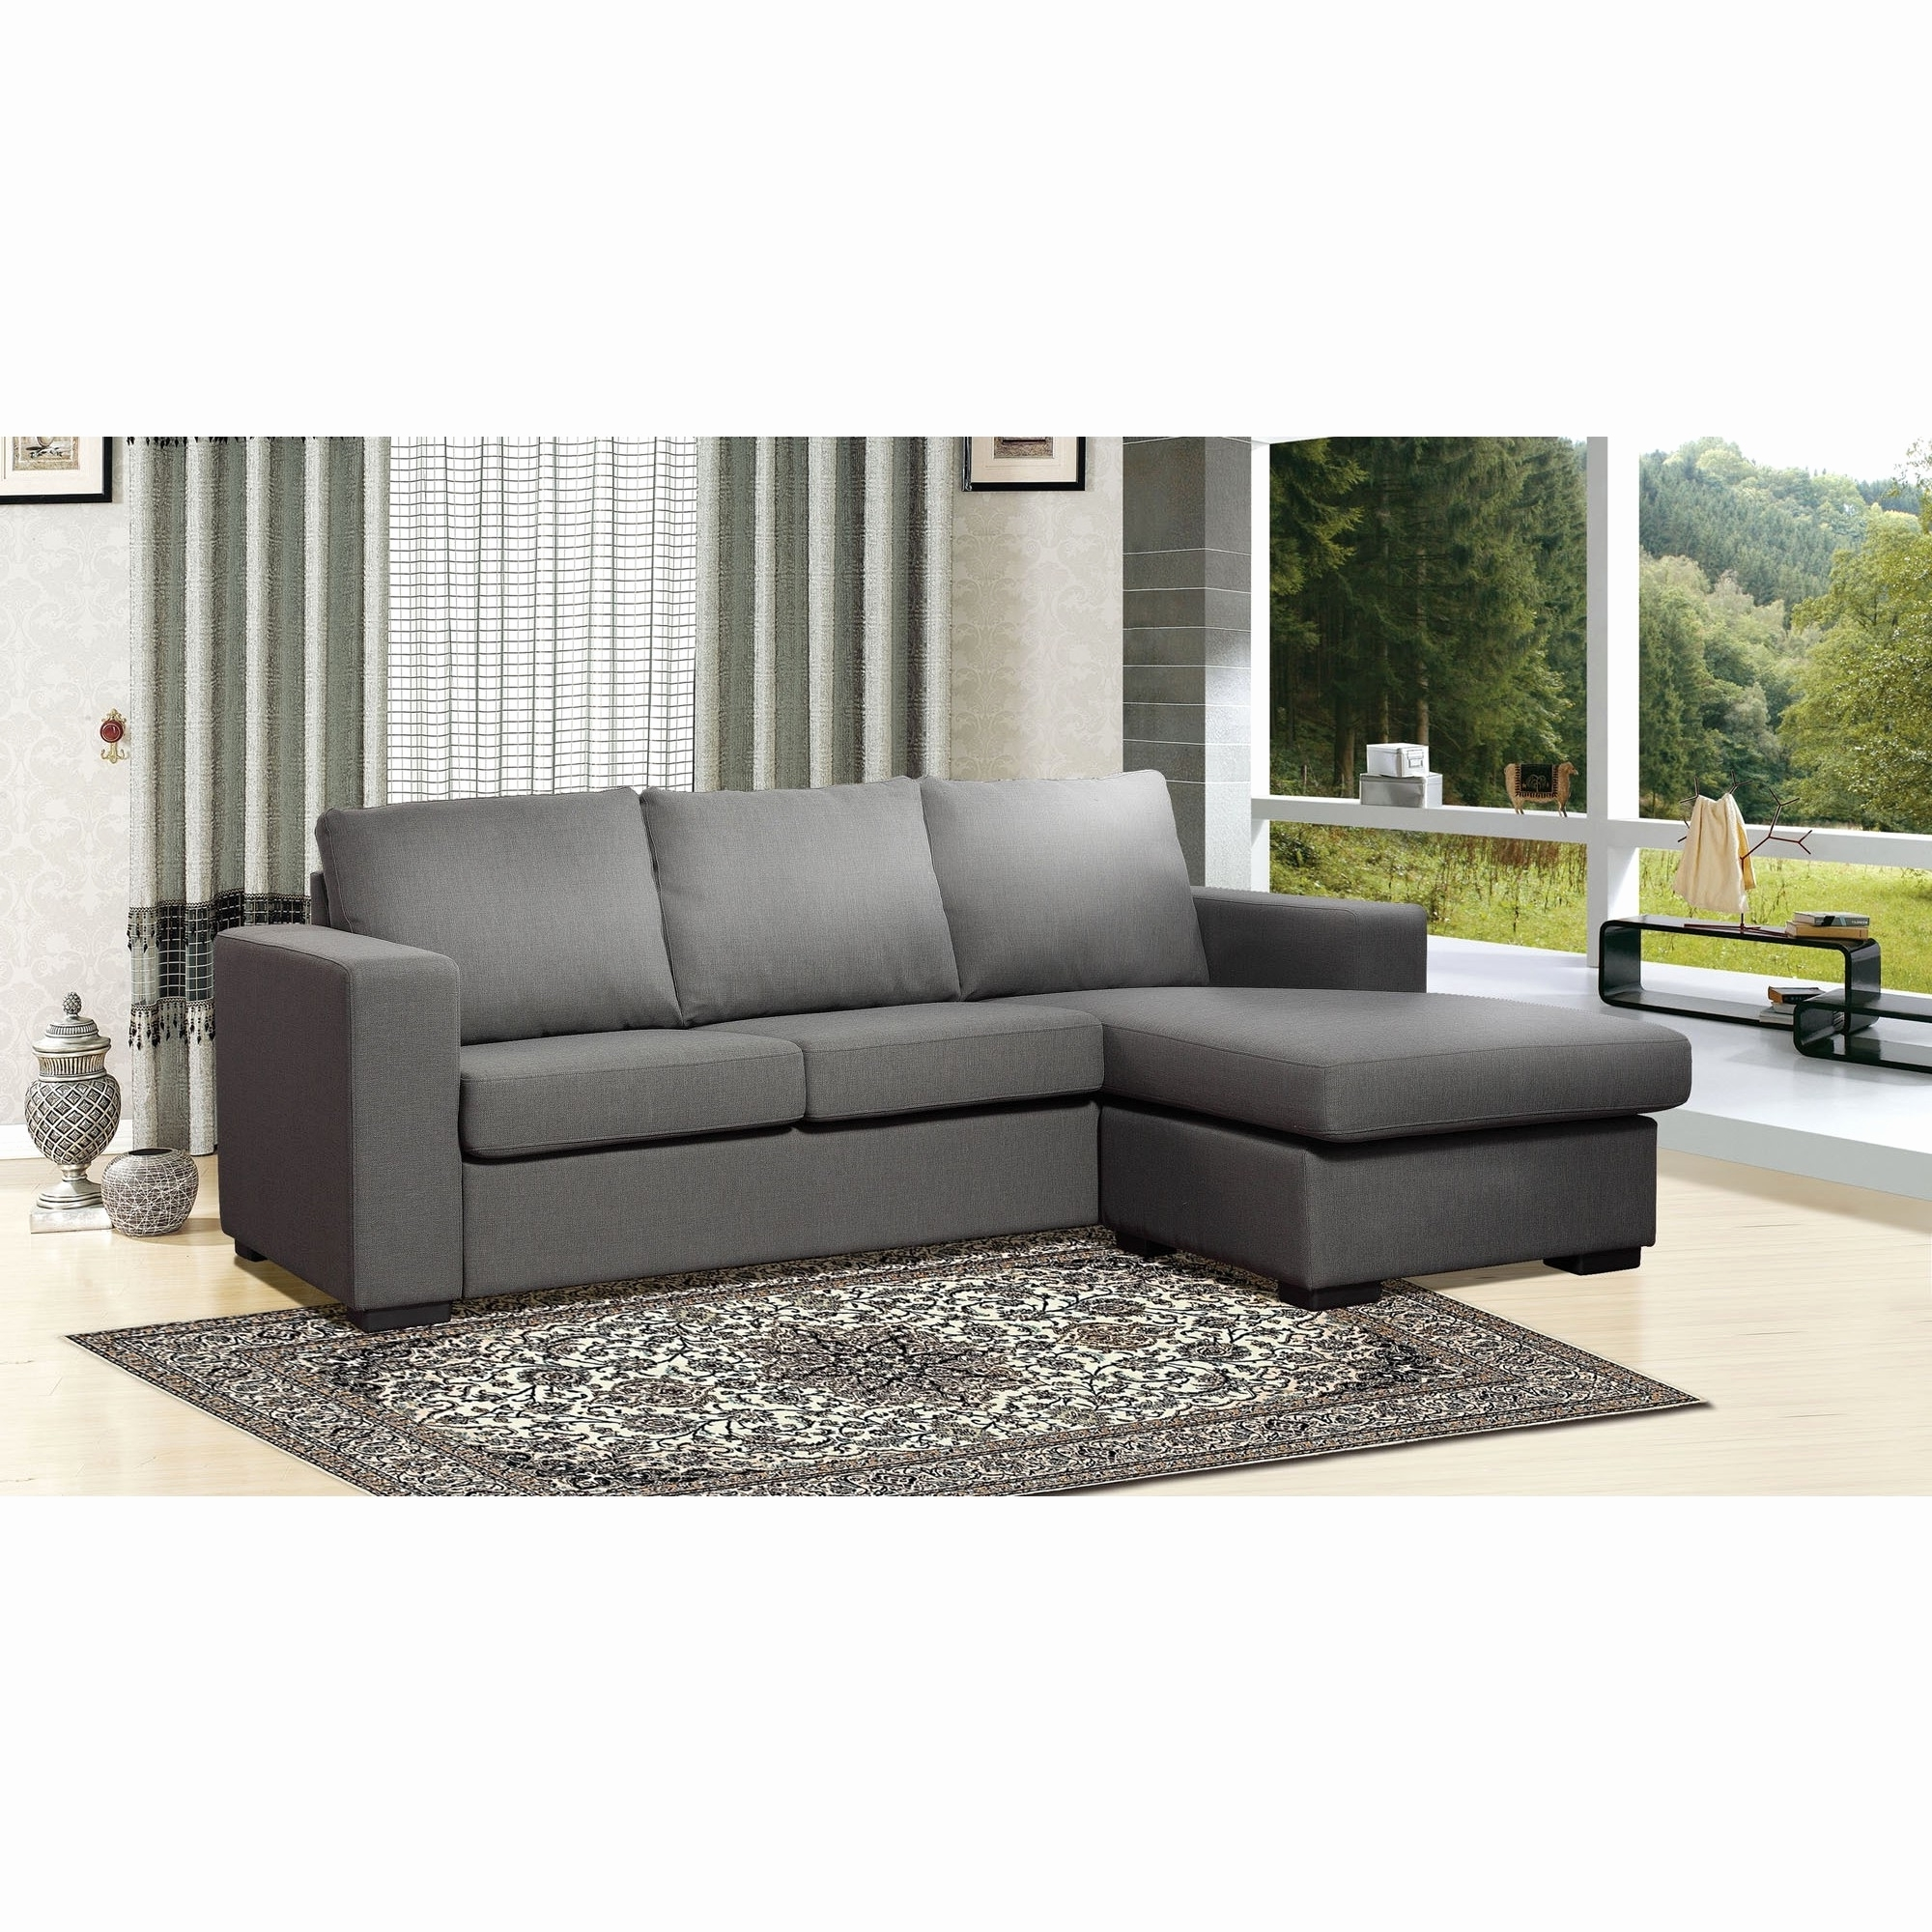 Gray Sectional Sofas With Chaise Pertaining To Most Recent Unique Gray Sectional Sofa With Chaise 2018 – Couches Ideas (View 13 of 15)